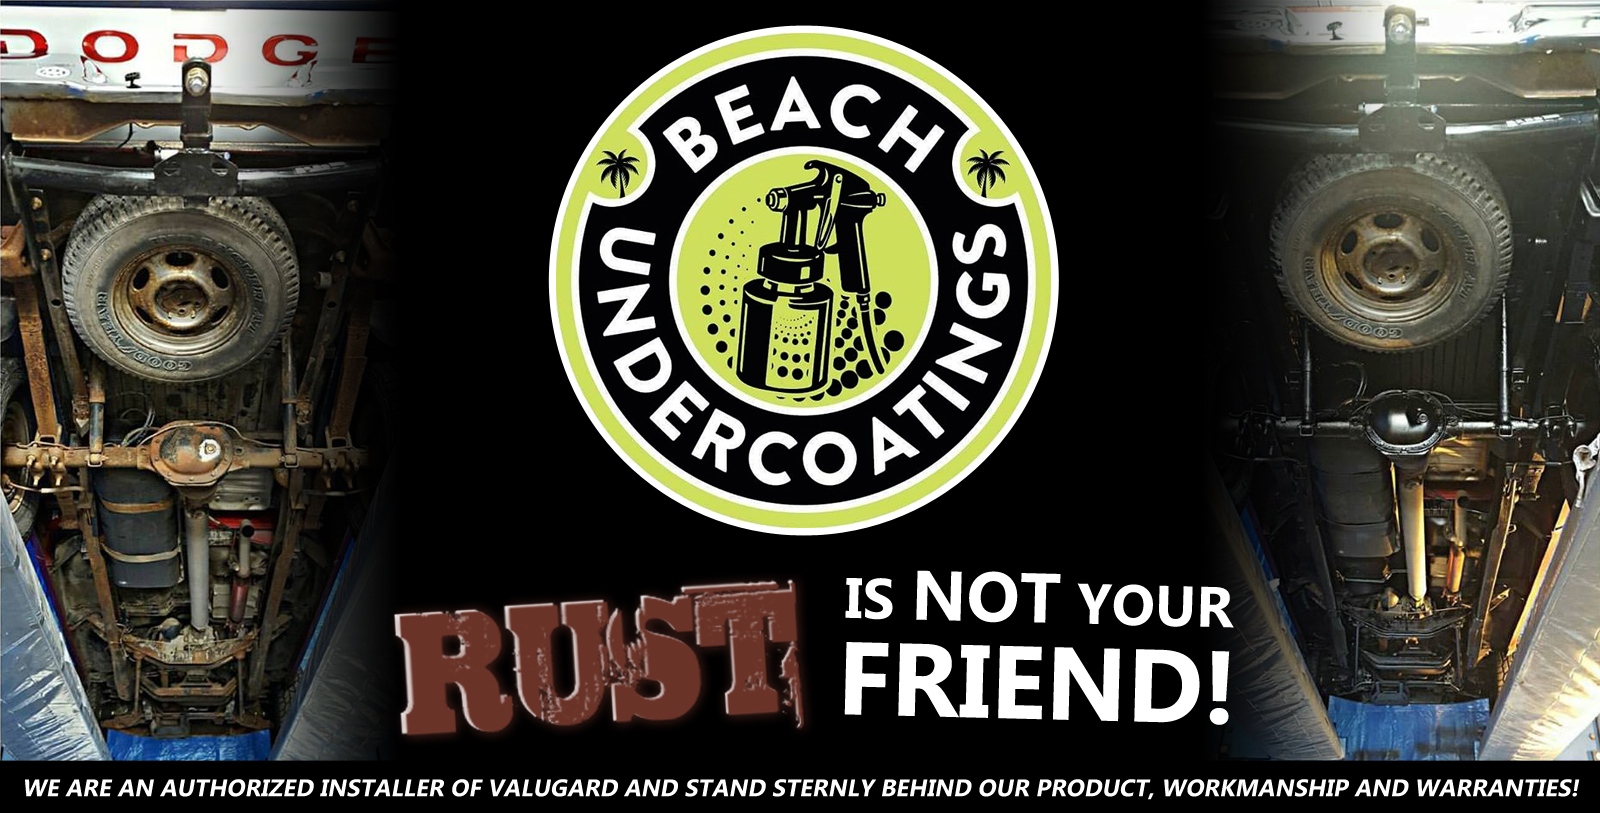 Beach Undercoatings in Virginia Beach, Virginia - Rust is Not Your Friend